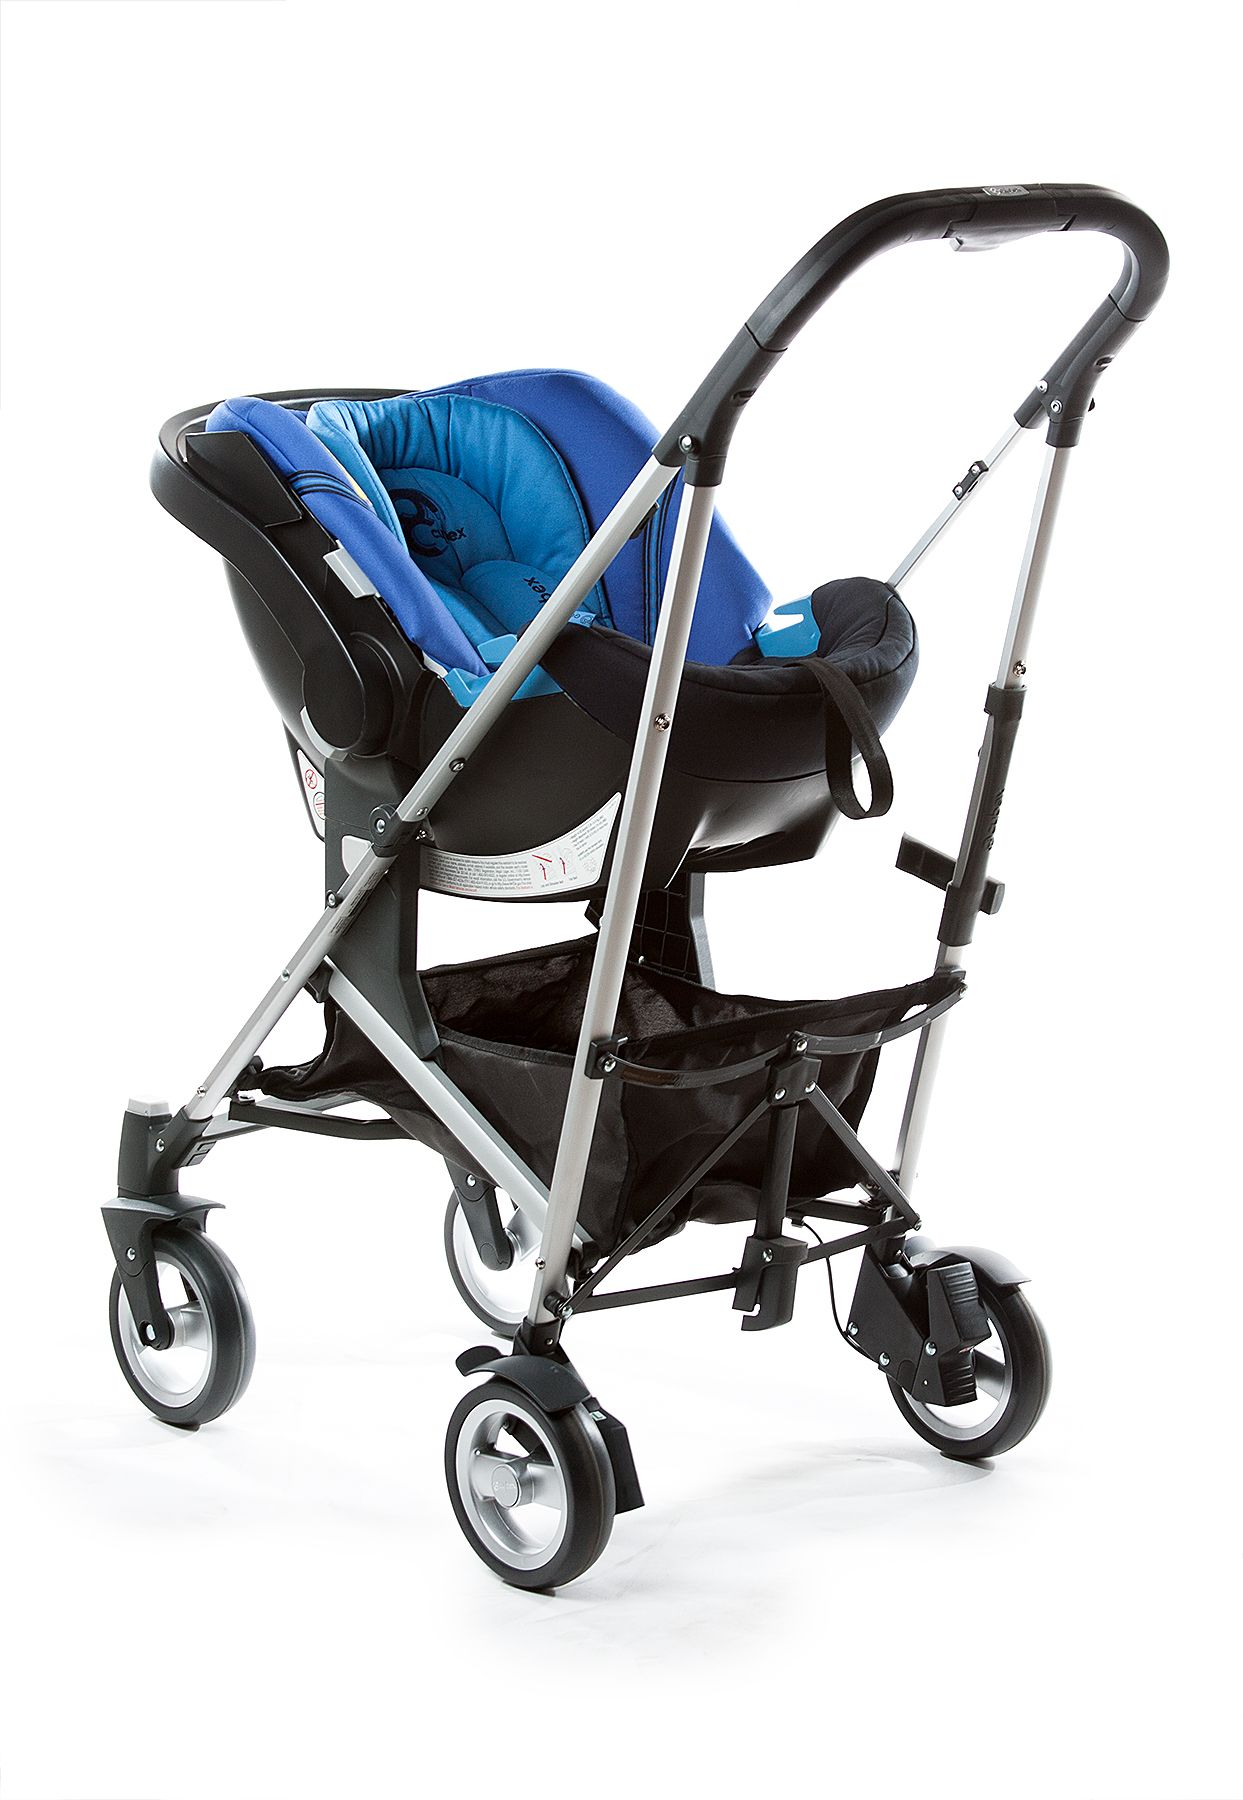 CYBEX Travel system. Many new parents' favorite, the